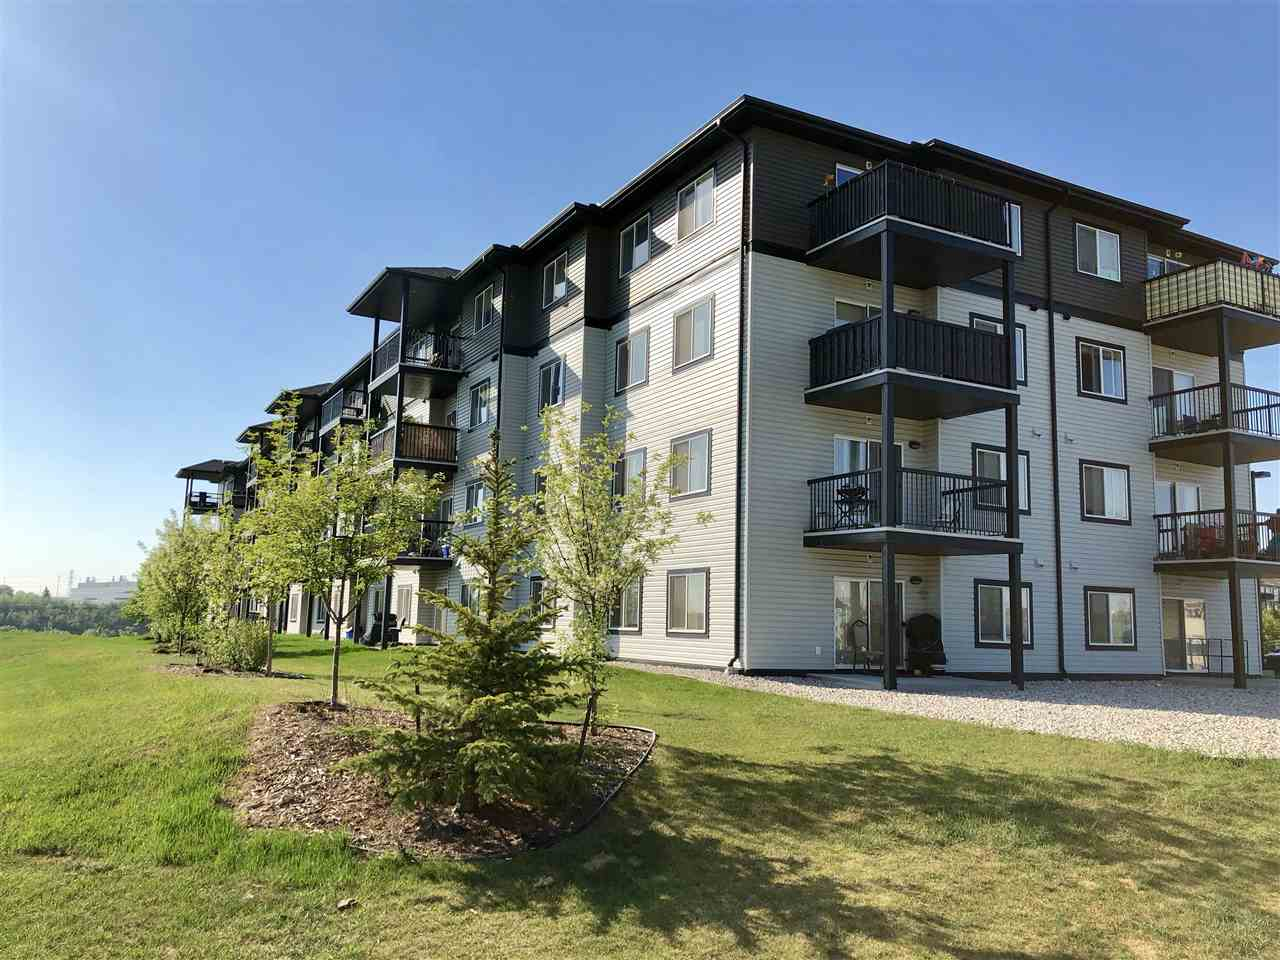 Meticulously maintained condo with panoramic views of the river valley is located on a quiet crescent. This unit is sure to impress on entry with its spacious foyer, open concept living and featuring gleaming dark laminate flooring throughout this area. The kitchen is bright with a large island and loads of counter and cupboard space. The comfy living room/ dining nook space has sliding patio doors to your concrete deck area that over looks the River Valley. The large master suite features a walk through closet to a full ensuite! Completing this condo is another good size bedroom, main full bath, huge pantry/front closet and stackable washer/dryer. There is a portable A/C unit negotiable to stay. The storage room is just outside the unit! Two titled parking stalls one underground and heated that will fit a large vehicle and an outside stall right by the front door.